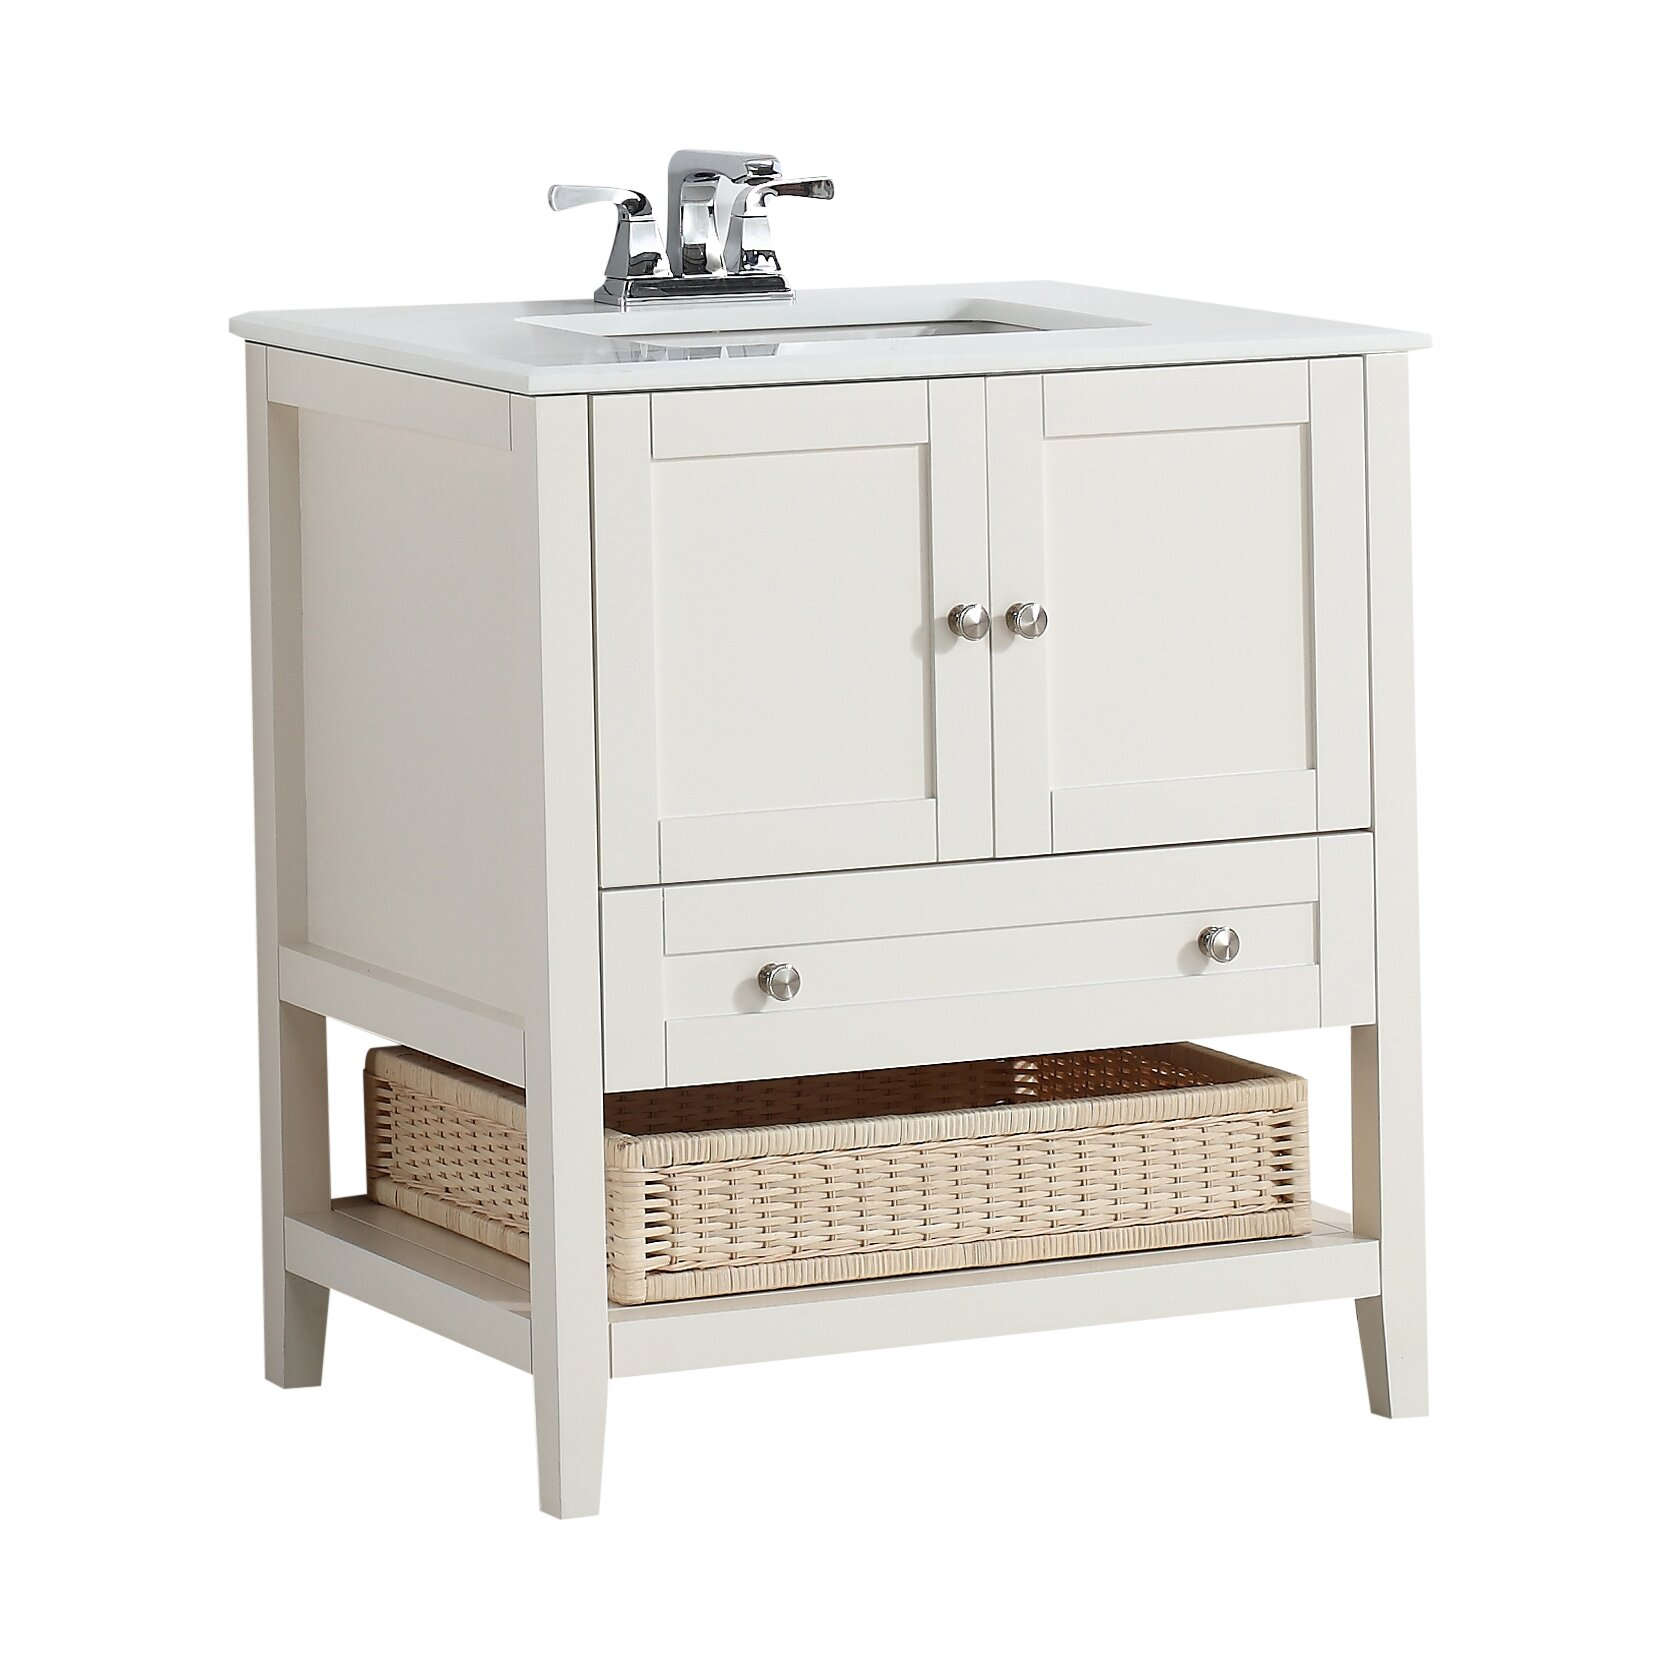 Simpli home cape cod 31 single bathroom vanity set for Bath and vanity set